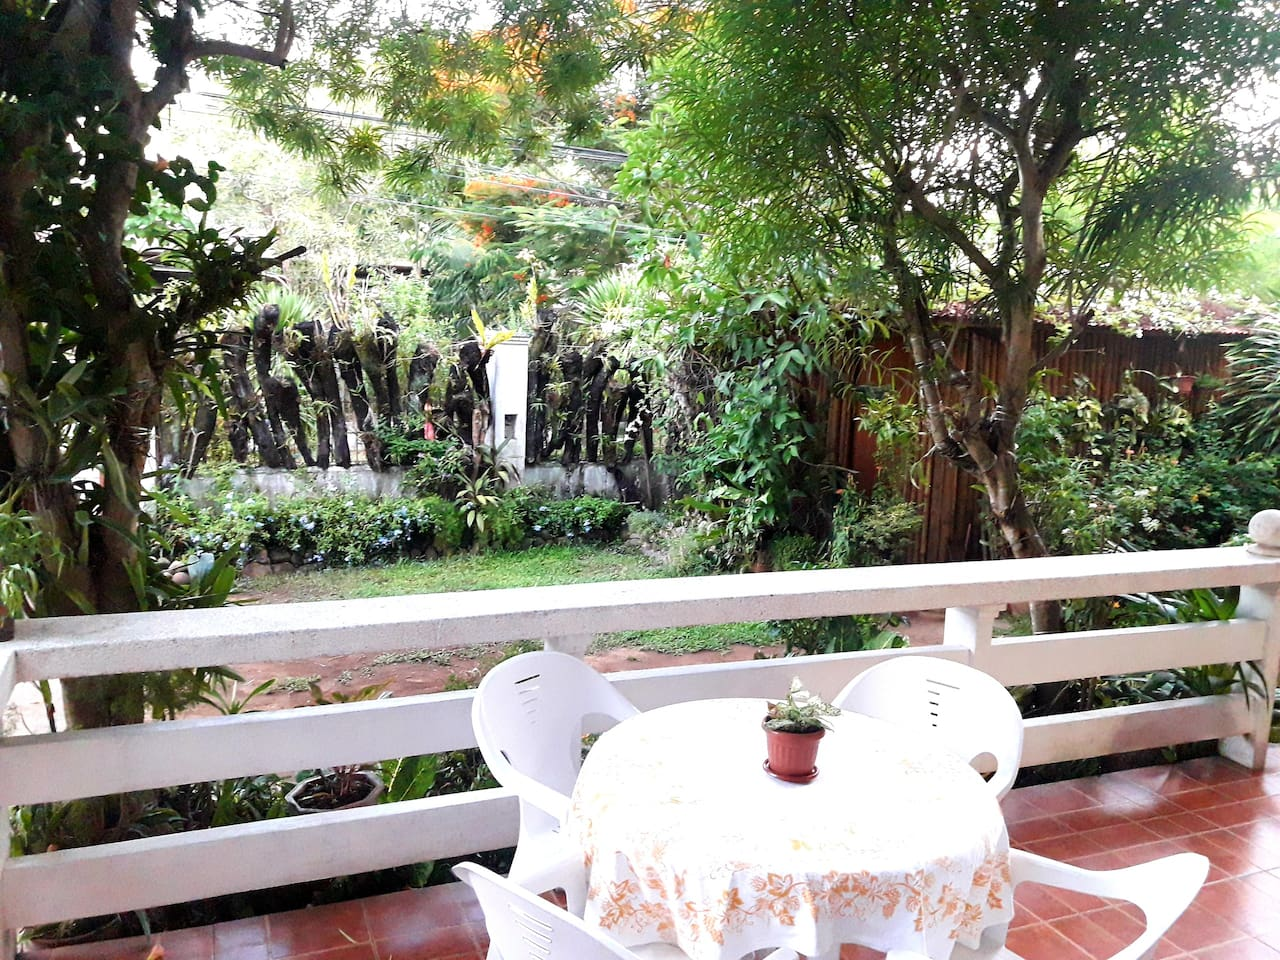 Early morning, while having breakfast in our terrace, you can hear, see's and enjoy a wonderful multi-color of butterflies, bee's, native humming bird, rice bird and maya.